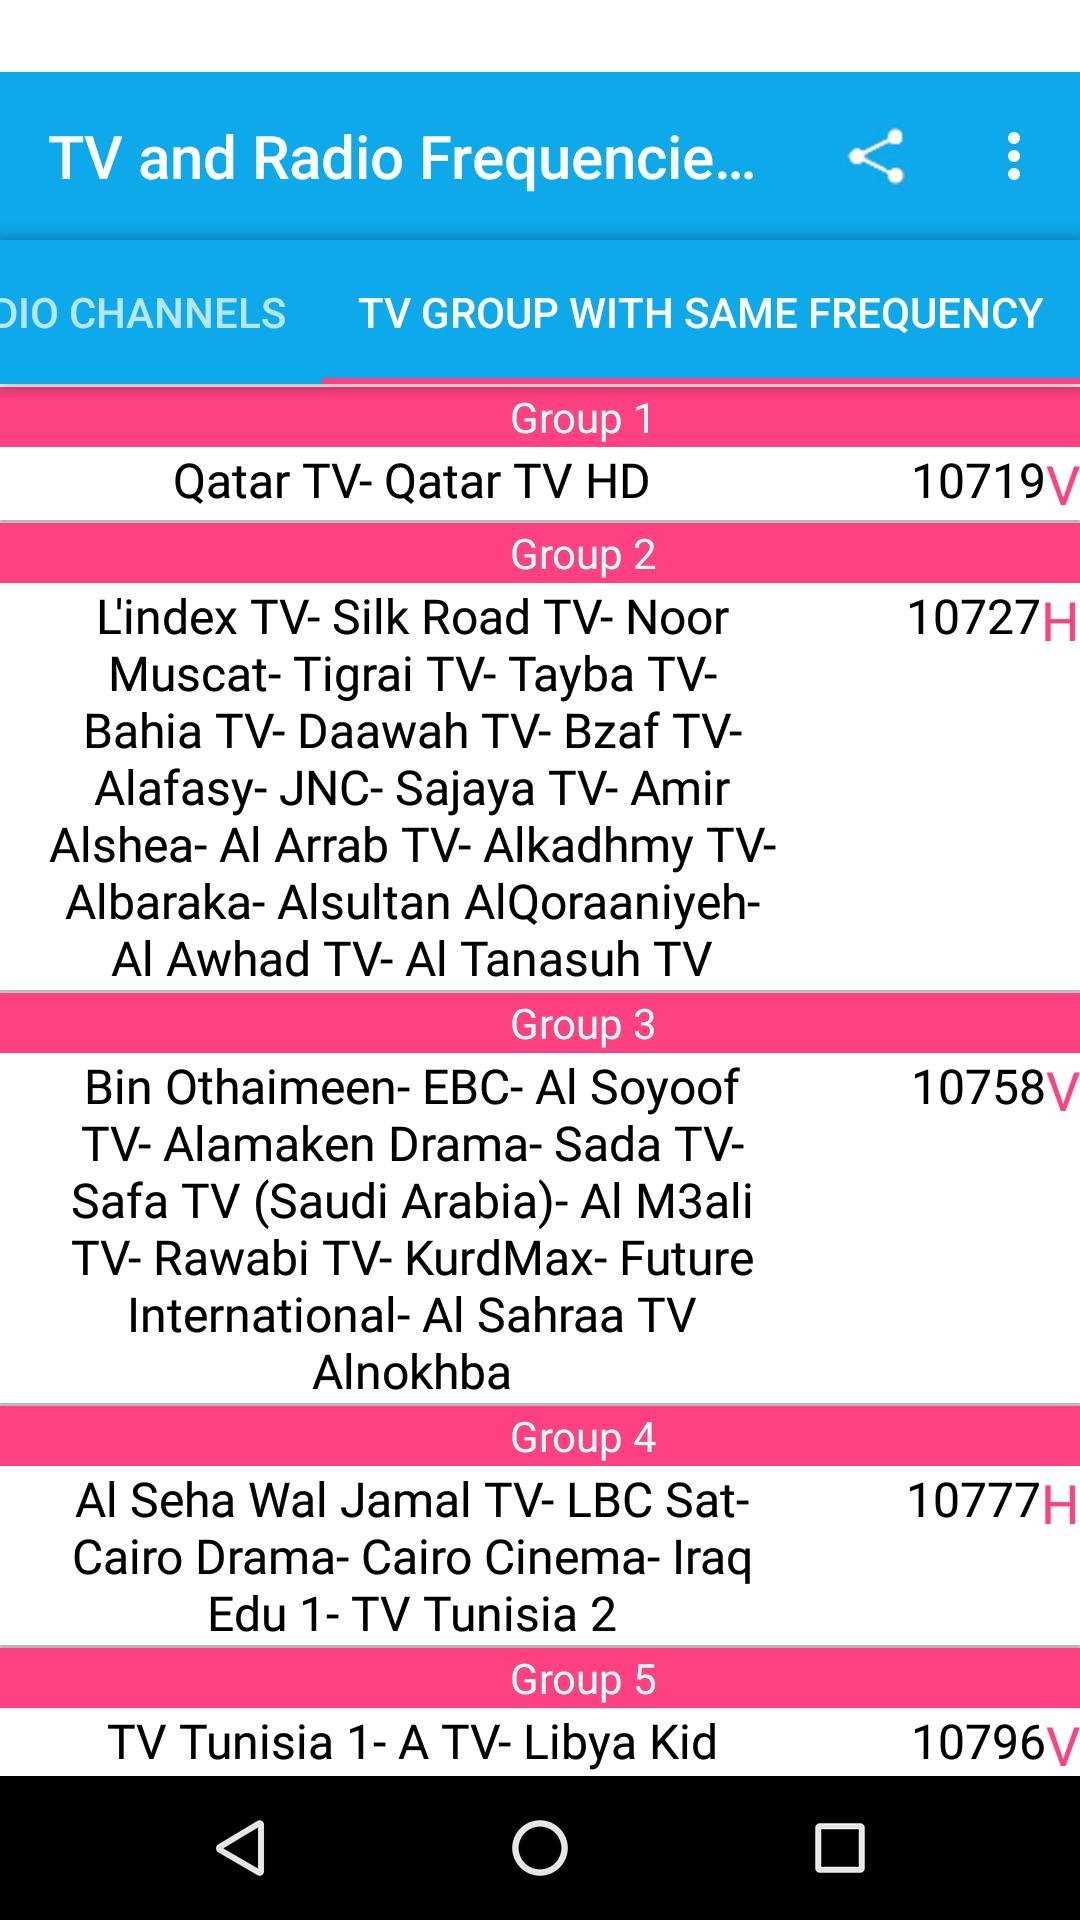 TV and Radio Frequencies on NileSat Satellite for Android